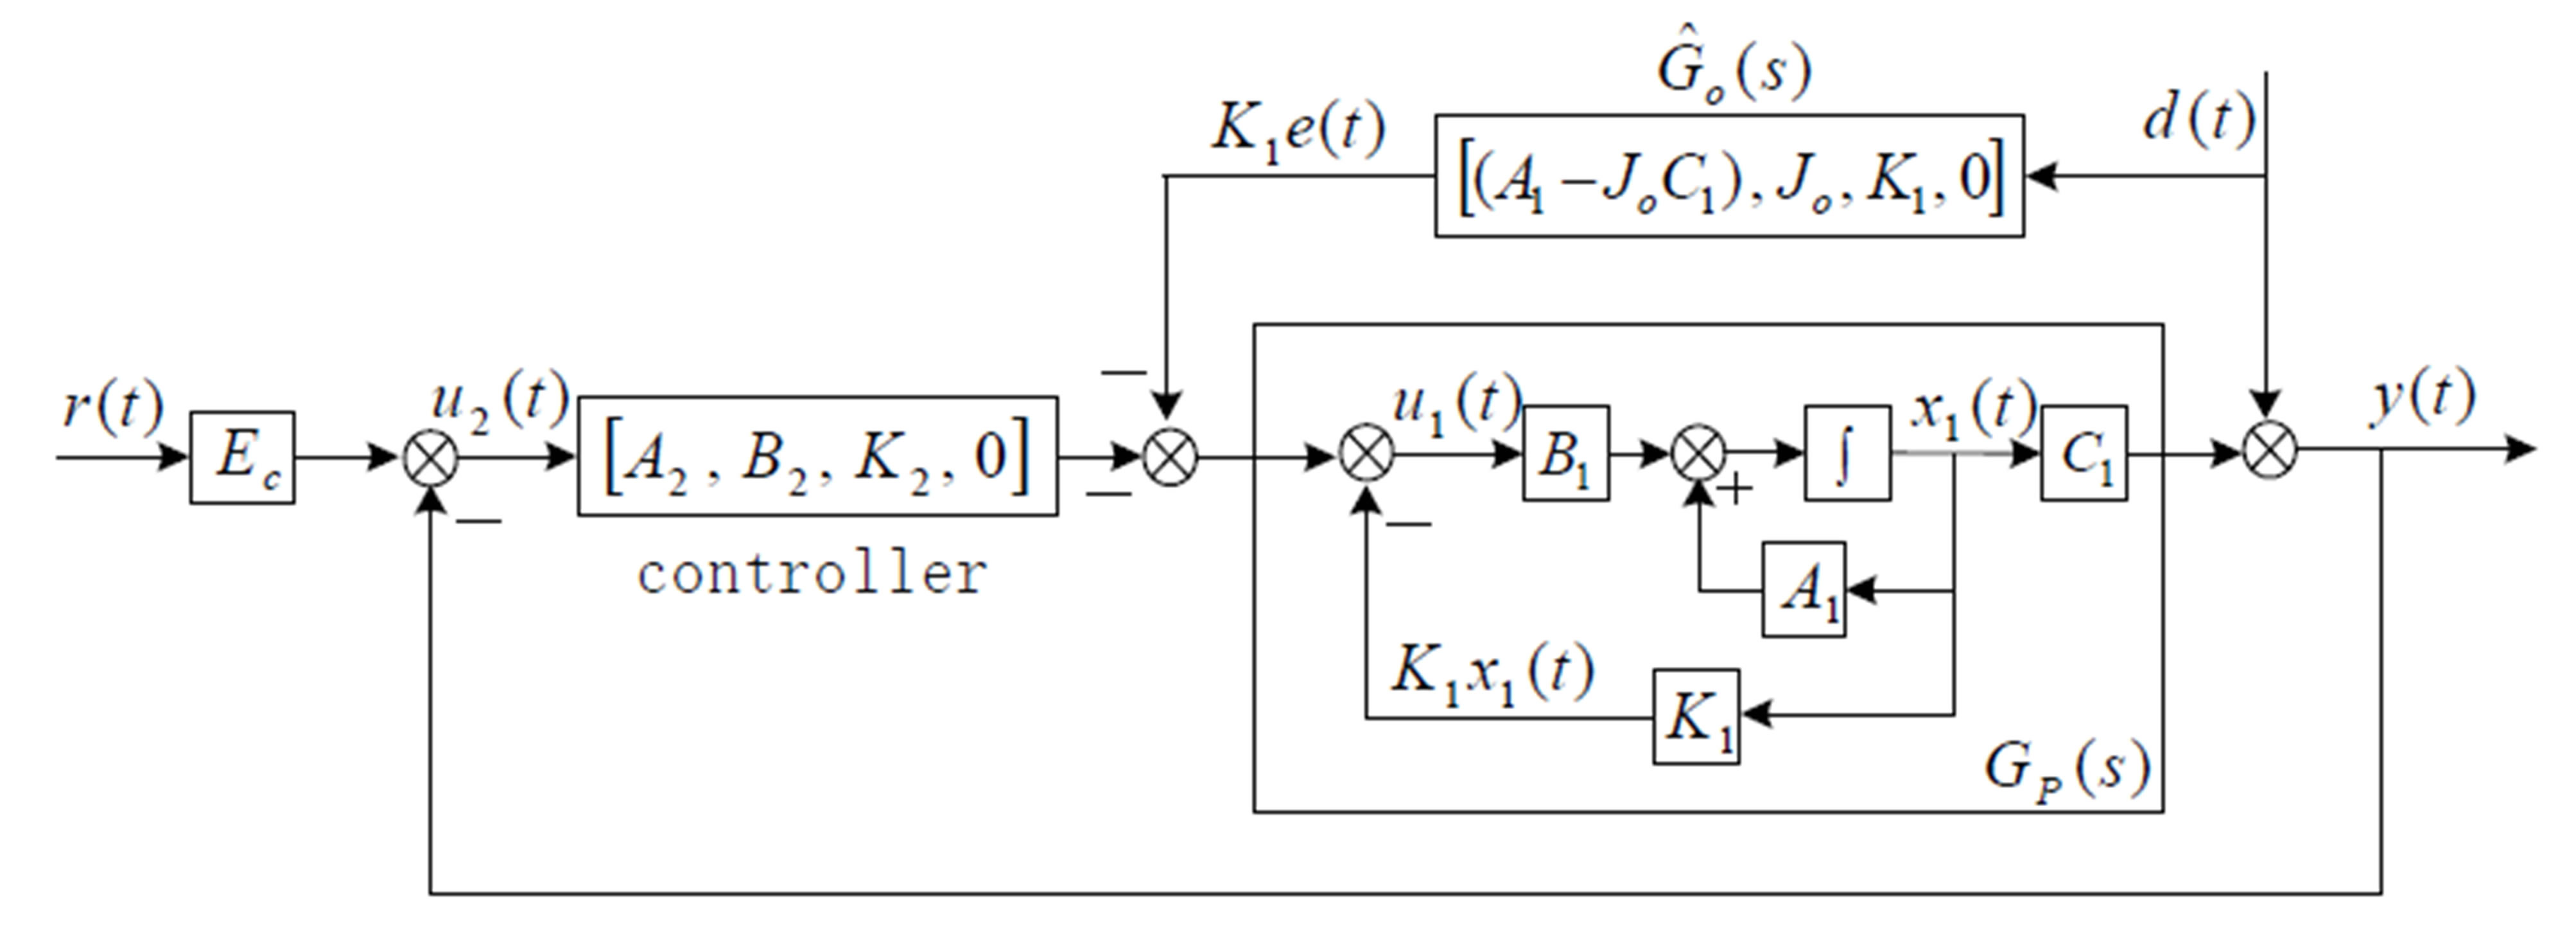 Design and Digital Implementation of Controller for PMSM Using